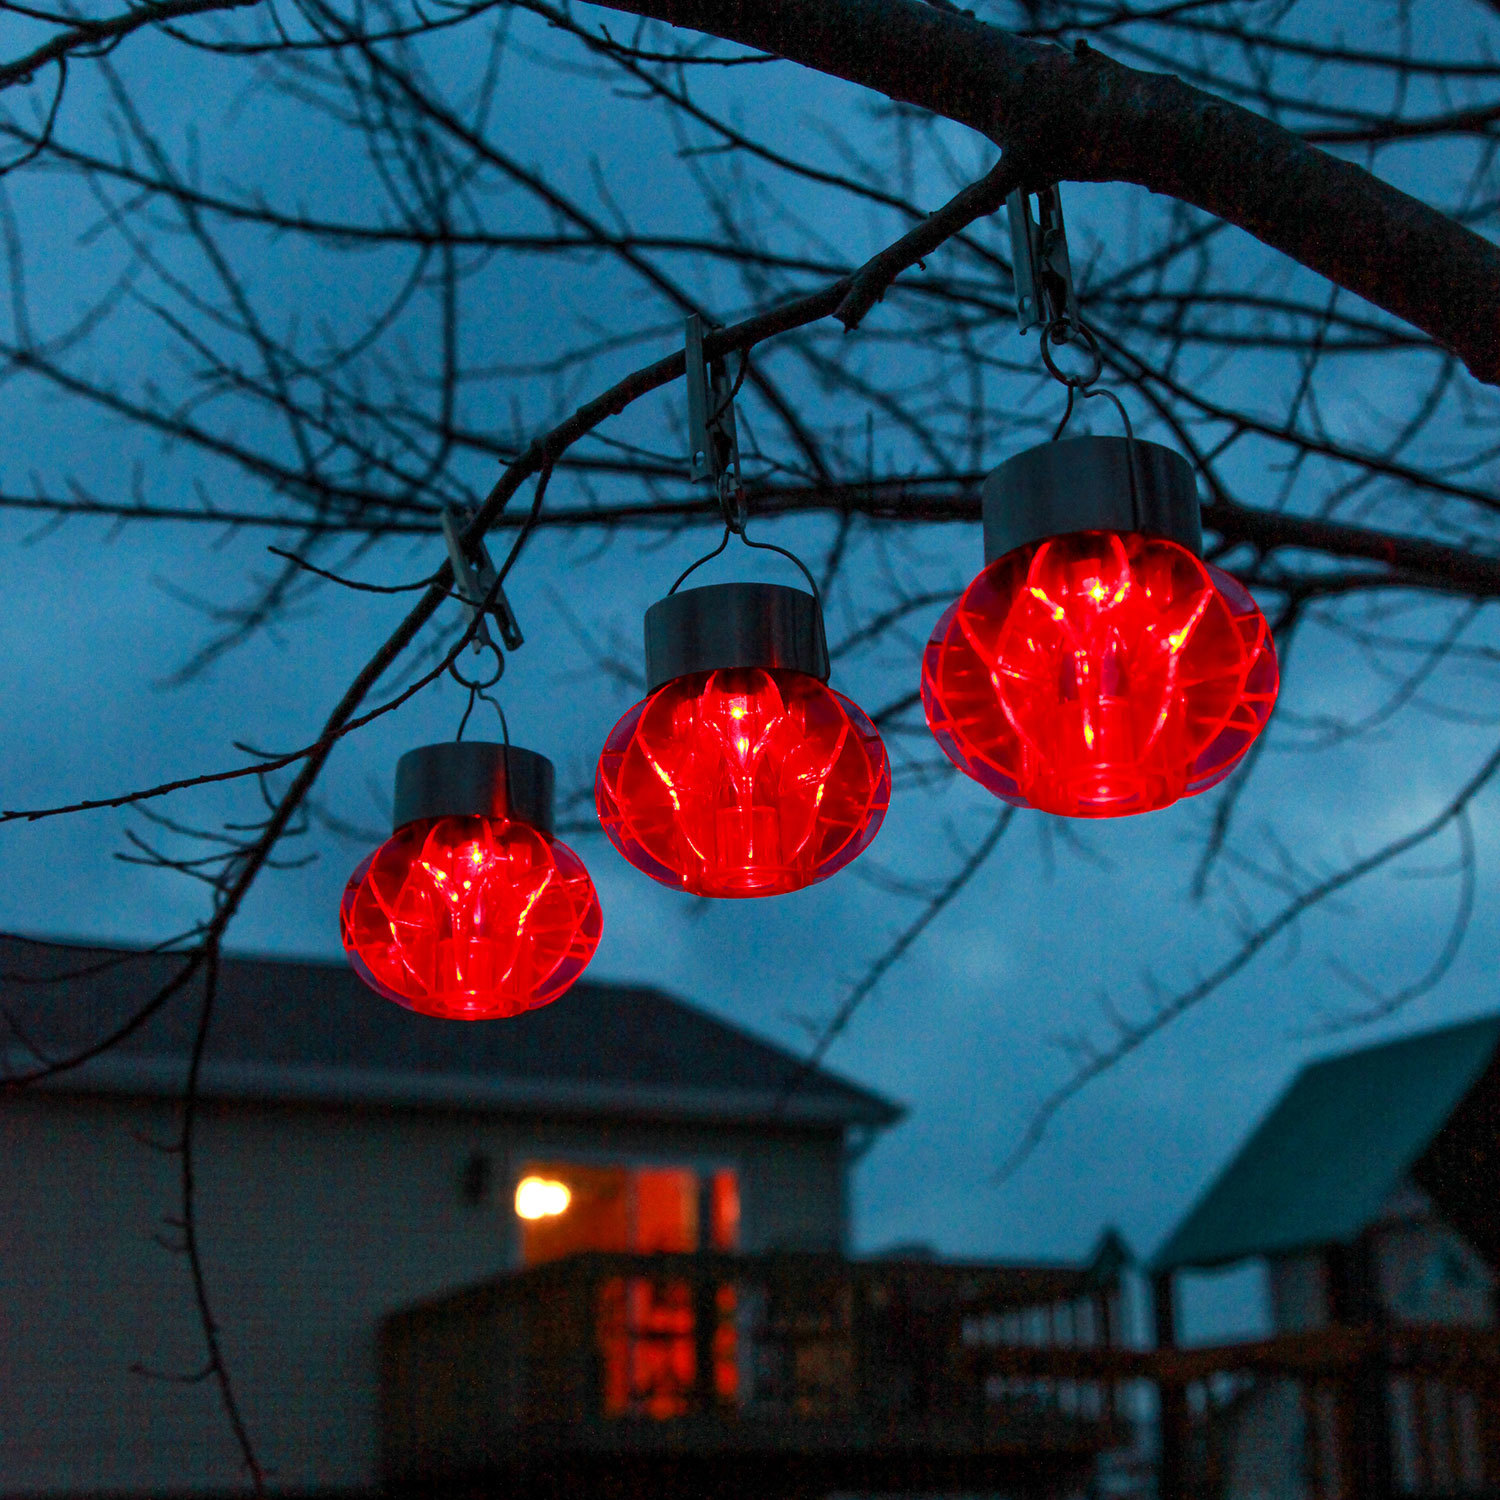 Outdoor Hanging Solar Lights picture on acrylic hot pink solar hanging lanterns set of 3 p 36732 with Outdoor Hanging Solar Lights, Outdoor Lighting ideas 7bf9cf73a4e8c879f3b213a1b9934574